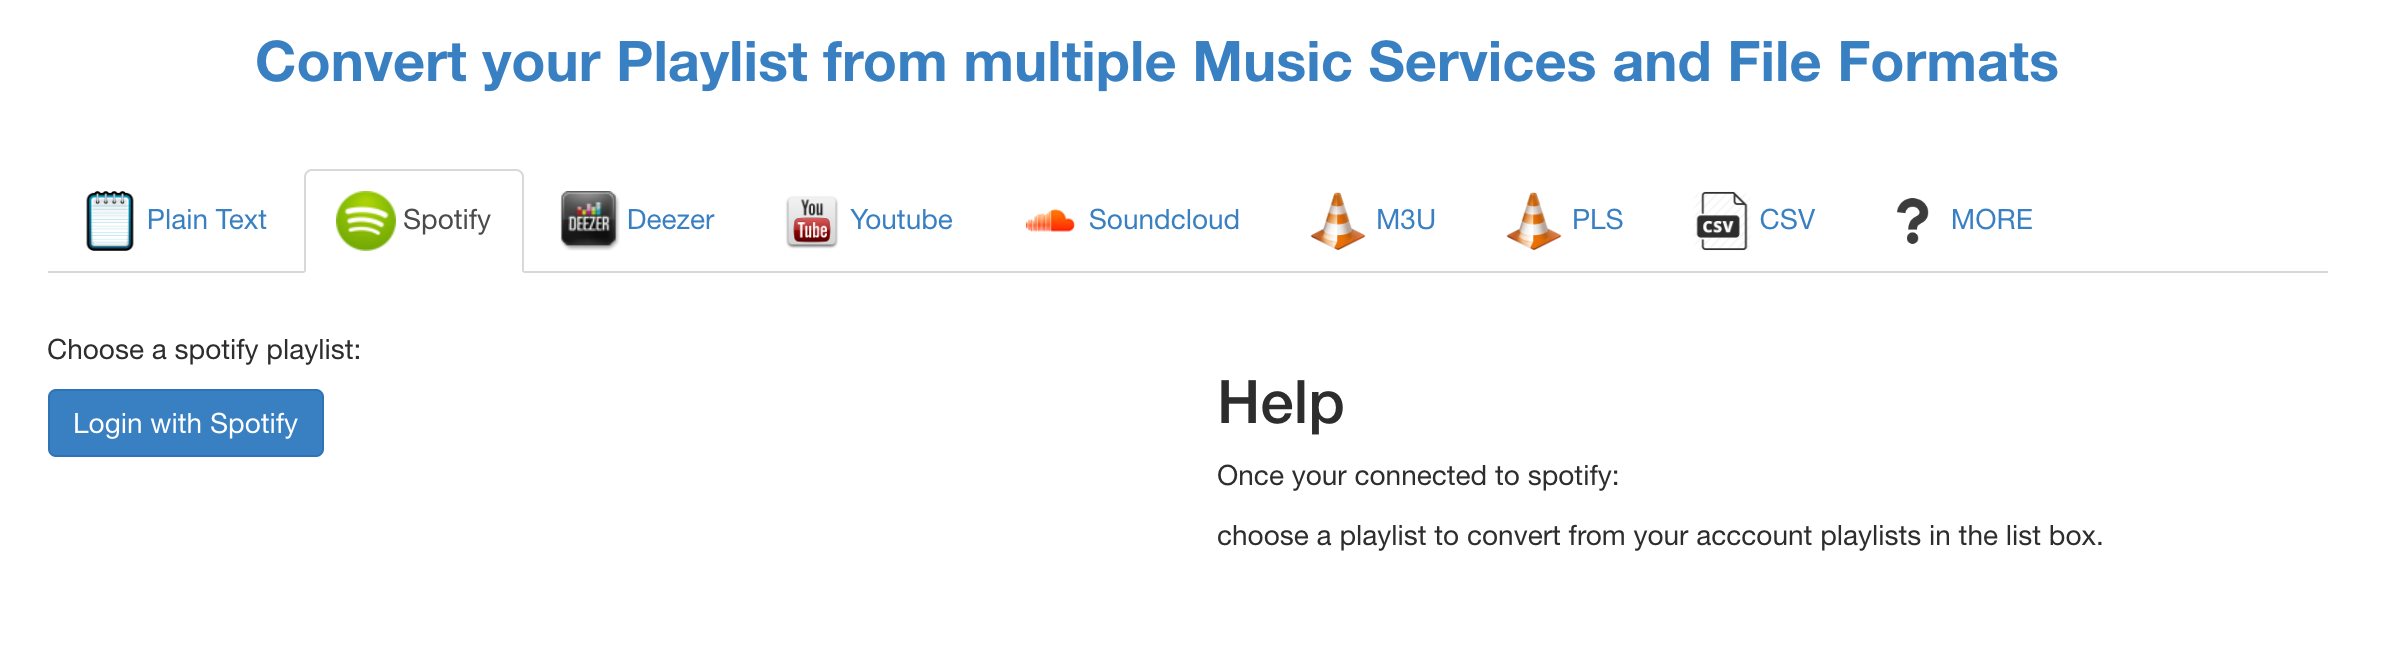 Spotify to MP3 Converter Review - Convert Spotify to MP3